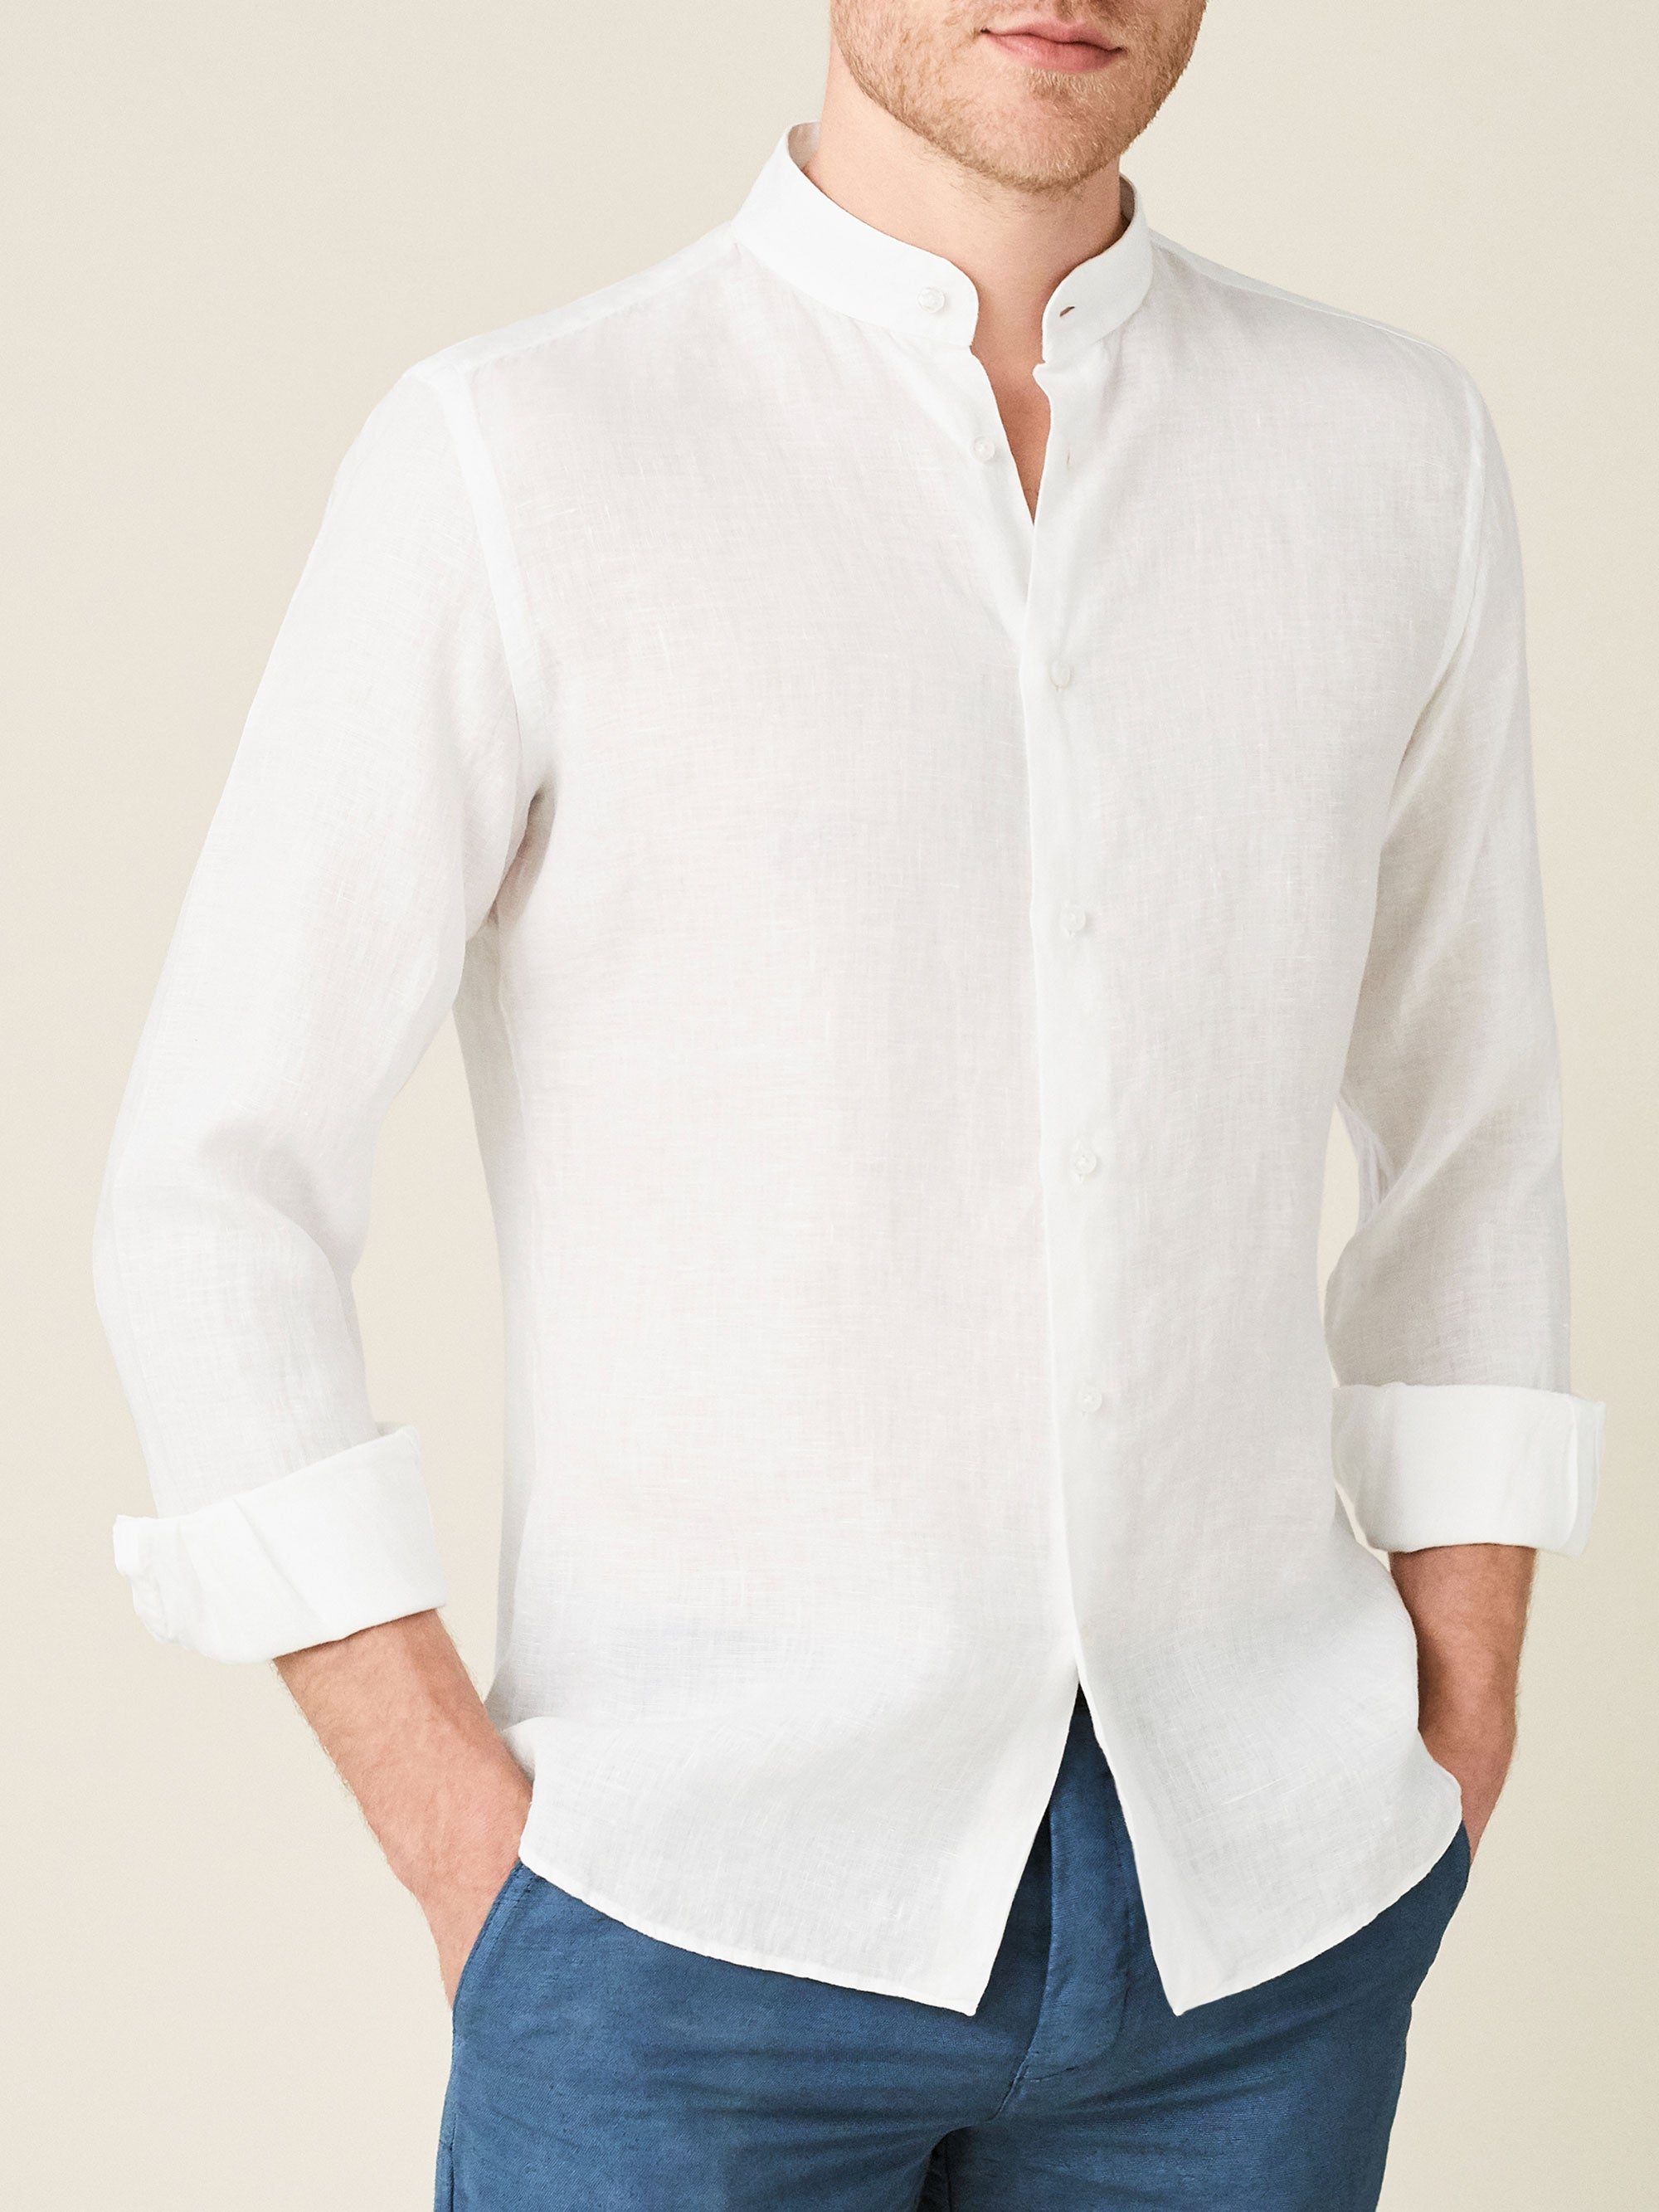 Luca Faloni White Versilia Linen Shirt Made in Italy